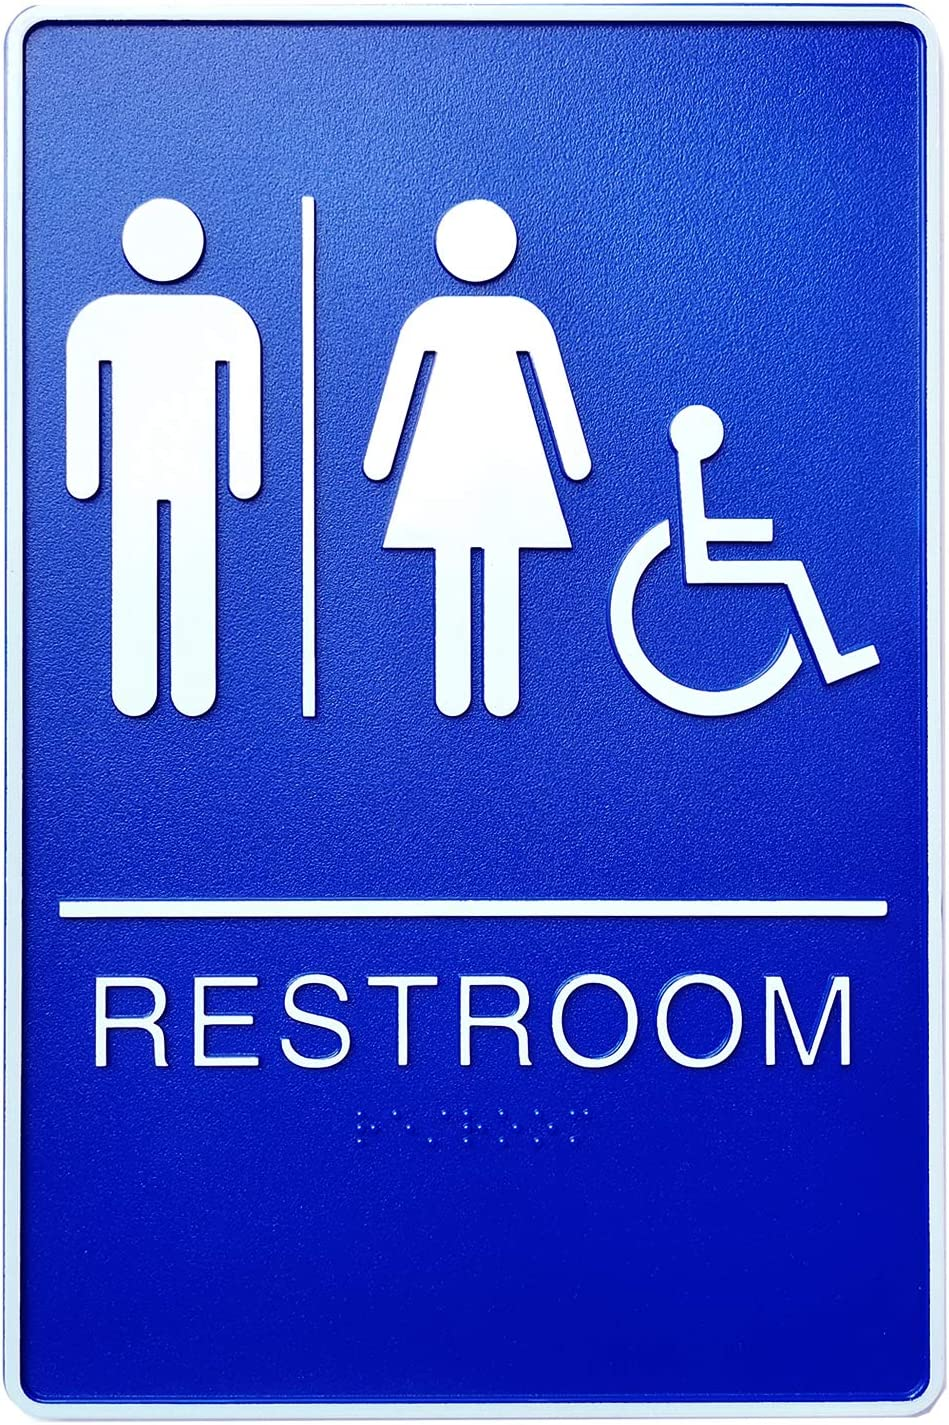 """Bebarley Self-Stick ADA Braille Unisex Restroom Signs with Double Sided 3M Tape for Office or Business Bathroom and Toilet Door or Wall Decor 9""""X6"""" (Blue)"""